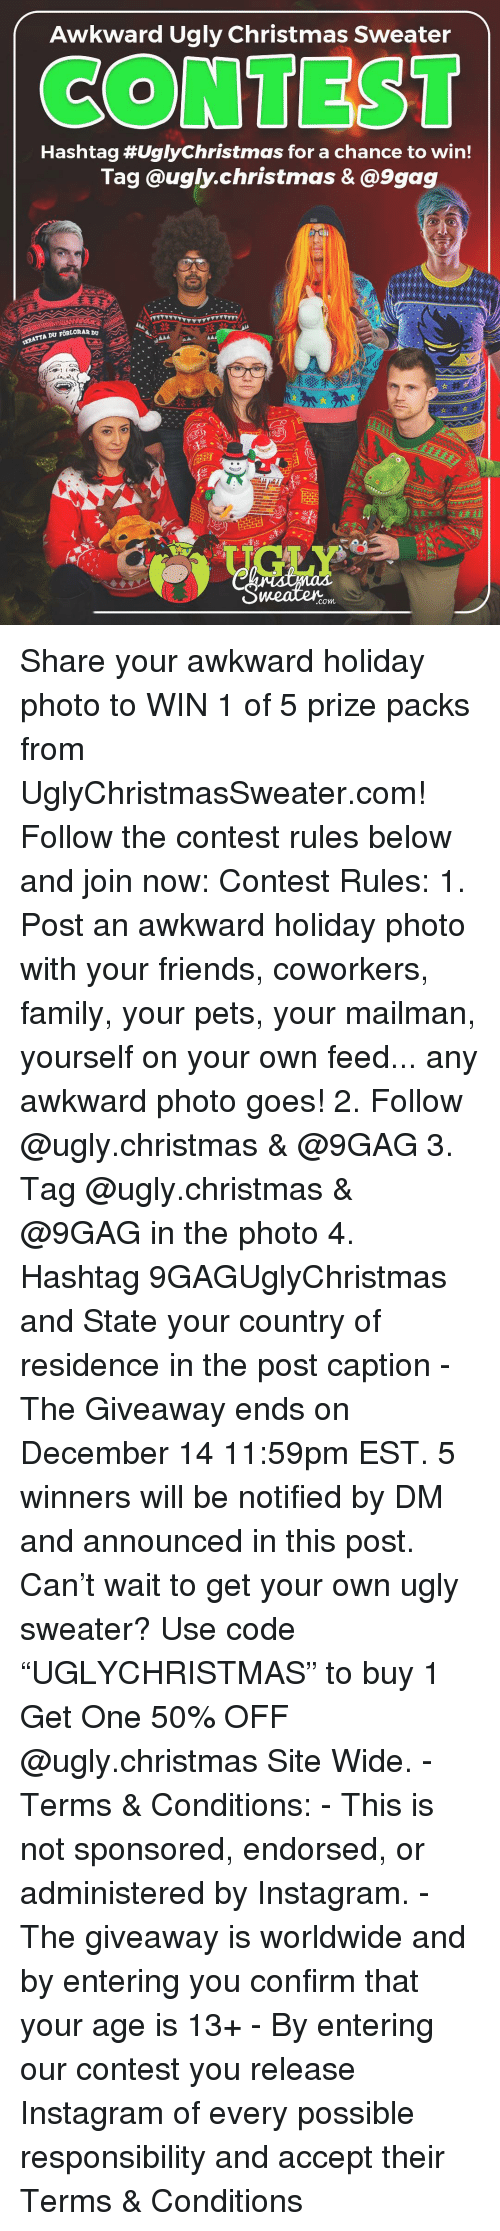 "9gag, Christmas, and Family: Awkward Ugly Christmas Sweater  CONTEST  Hashtag #UglyChristmas for a chance to win!  Tag @ugly.christmas &@9gag  KRATTA DU FORLORAR  .com Share your awkward holiday photo to WIN 1 of 5 prize packs from UglyChristmasSweater.com! Follow the contest rules below and join now: Contest Rules: 1. Post an awkward holiday photo with your friends, coworkers, family, your pets, your mailman, yourself on your own feed... any awkward photo goes! 2. Follow @ugly.christmas & @9GAG 3. Tag @ugly.christmas & @9GAG in the photo 4. Hashtag 9GAGUglyChristmas and State your country of residence in the post caption - The Giveaway ends on December 14 11:59pm EST. 5 winners will be notified by DM and announced in this post. Can't wait to get your own ugly sweater? Use code ""UGLYCHRISTMAS"" to buy 1 Get One 50% OFF @ugly.christmas Site Wide. - Terms & Conditions: - This is not sponsored, endorsed, or administered by Instagram. - The giveaway is worldwide and by entering you confirm that your age is 13+ - By entering our contest you release Instagram of every possible responsibility and accept their Terms & Conditions"